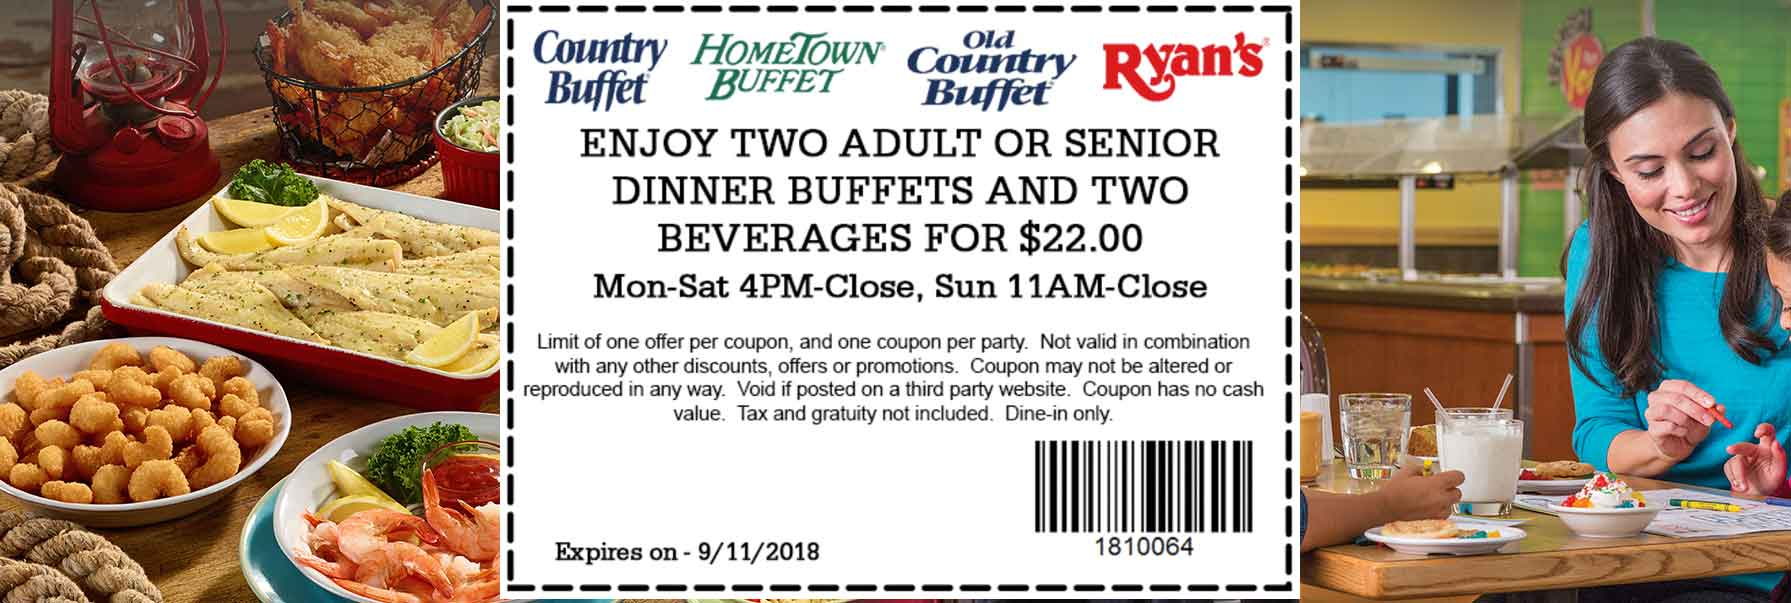 Hometown Buffet Coupon February 2020 2 dinners + drinks = $22 at Ryans, HomeTown Buffet & Old Country Buffet